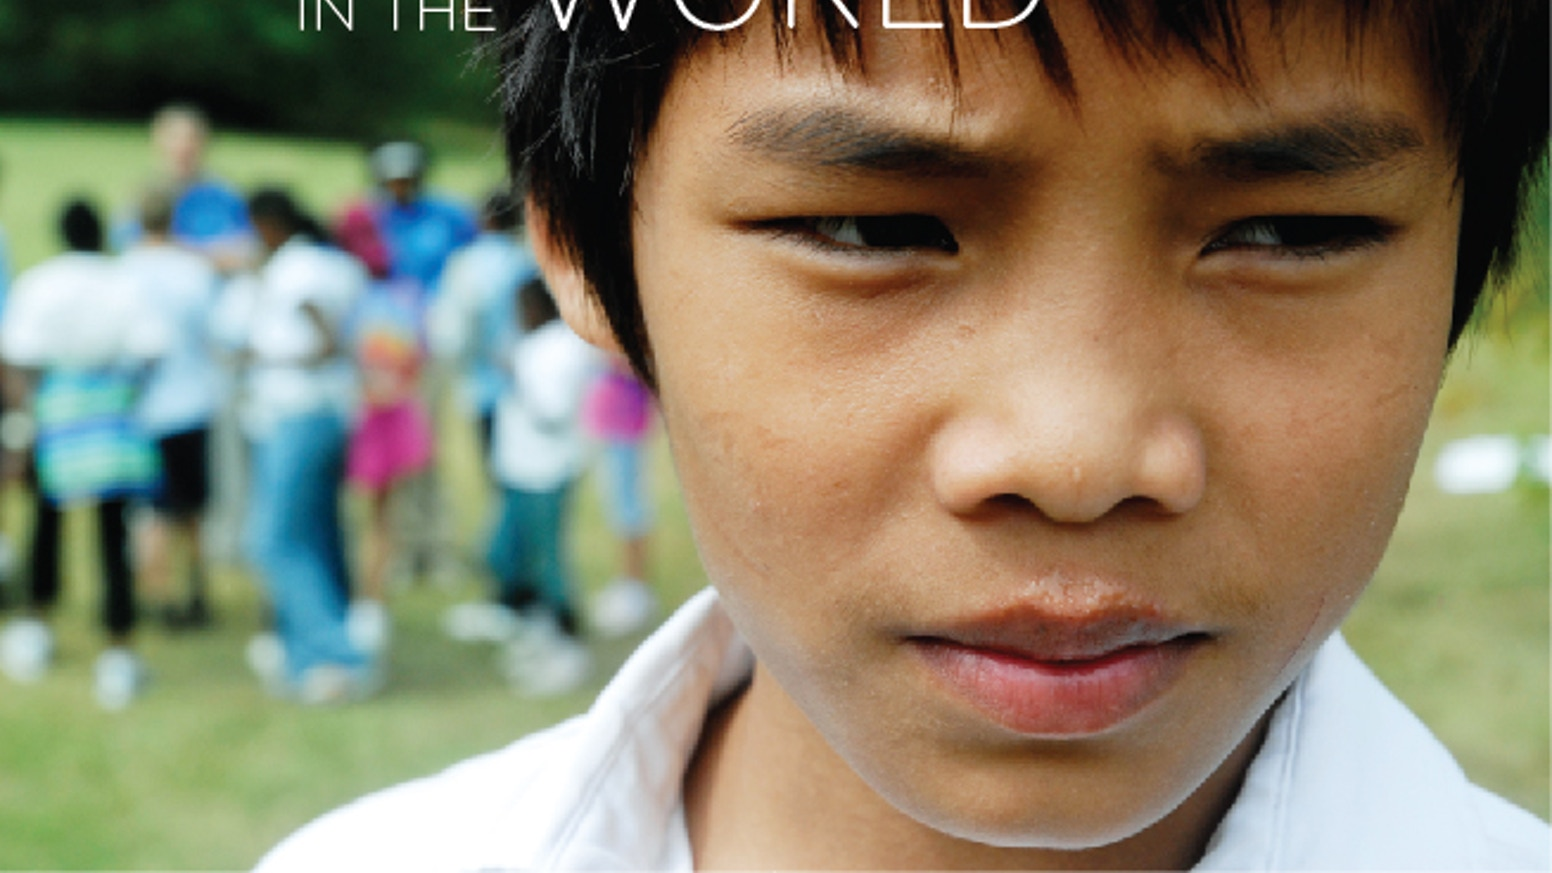 A feature-length documentary film about a school that teaches refugee children from war-torn countries alongside local American kids.